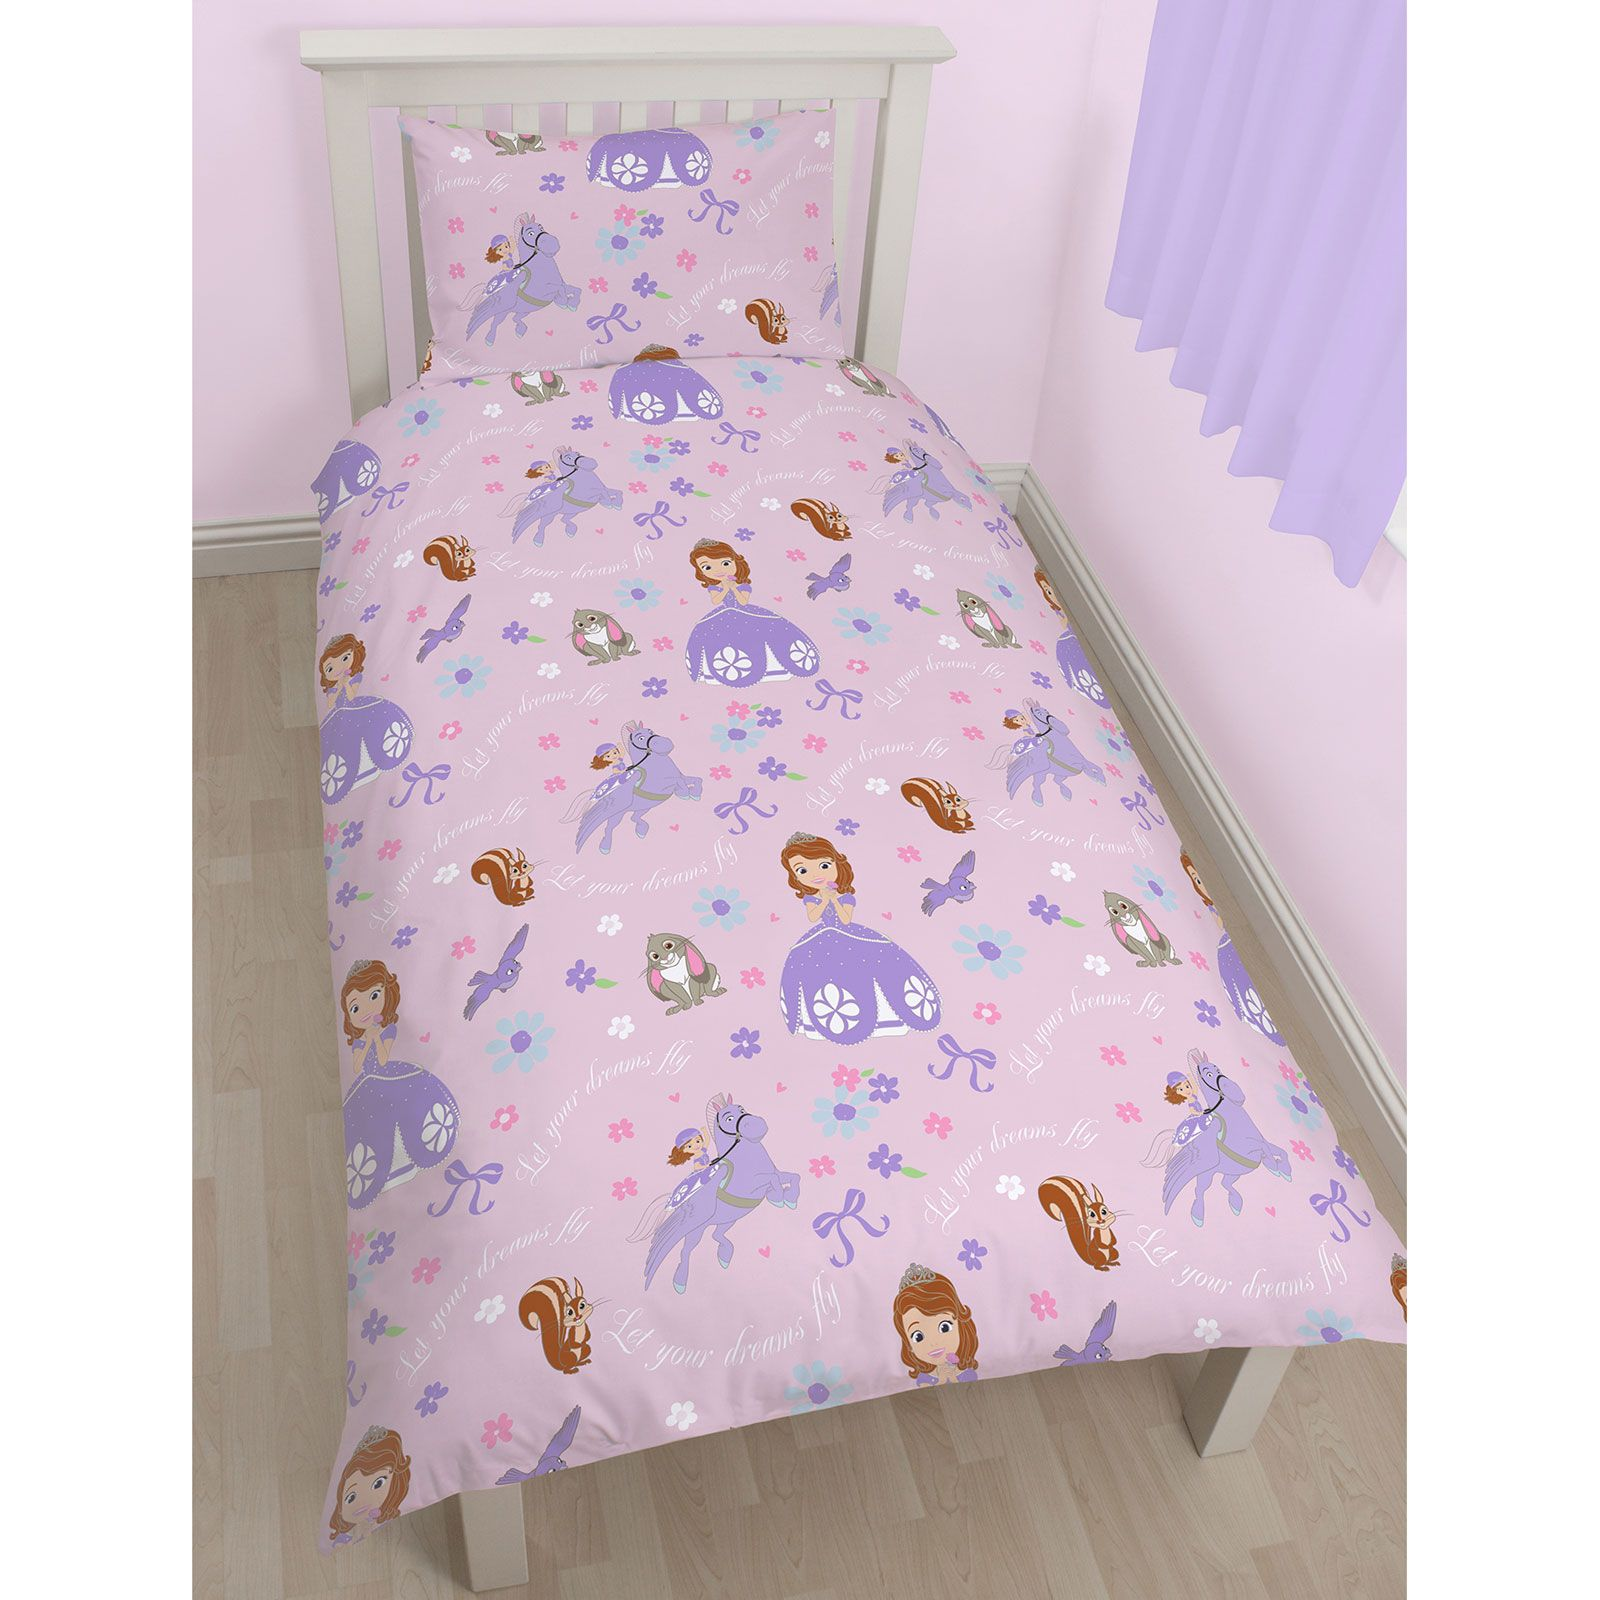 Disney sofia the first bedding single double junior - Sofia the first bedroom ...